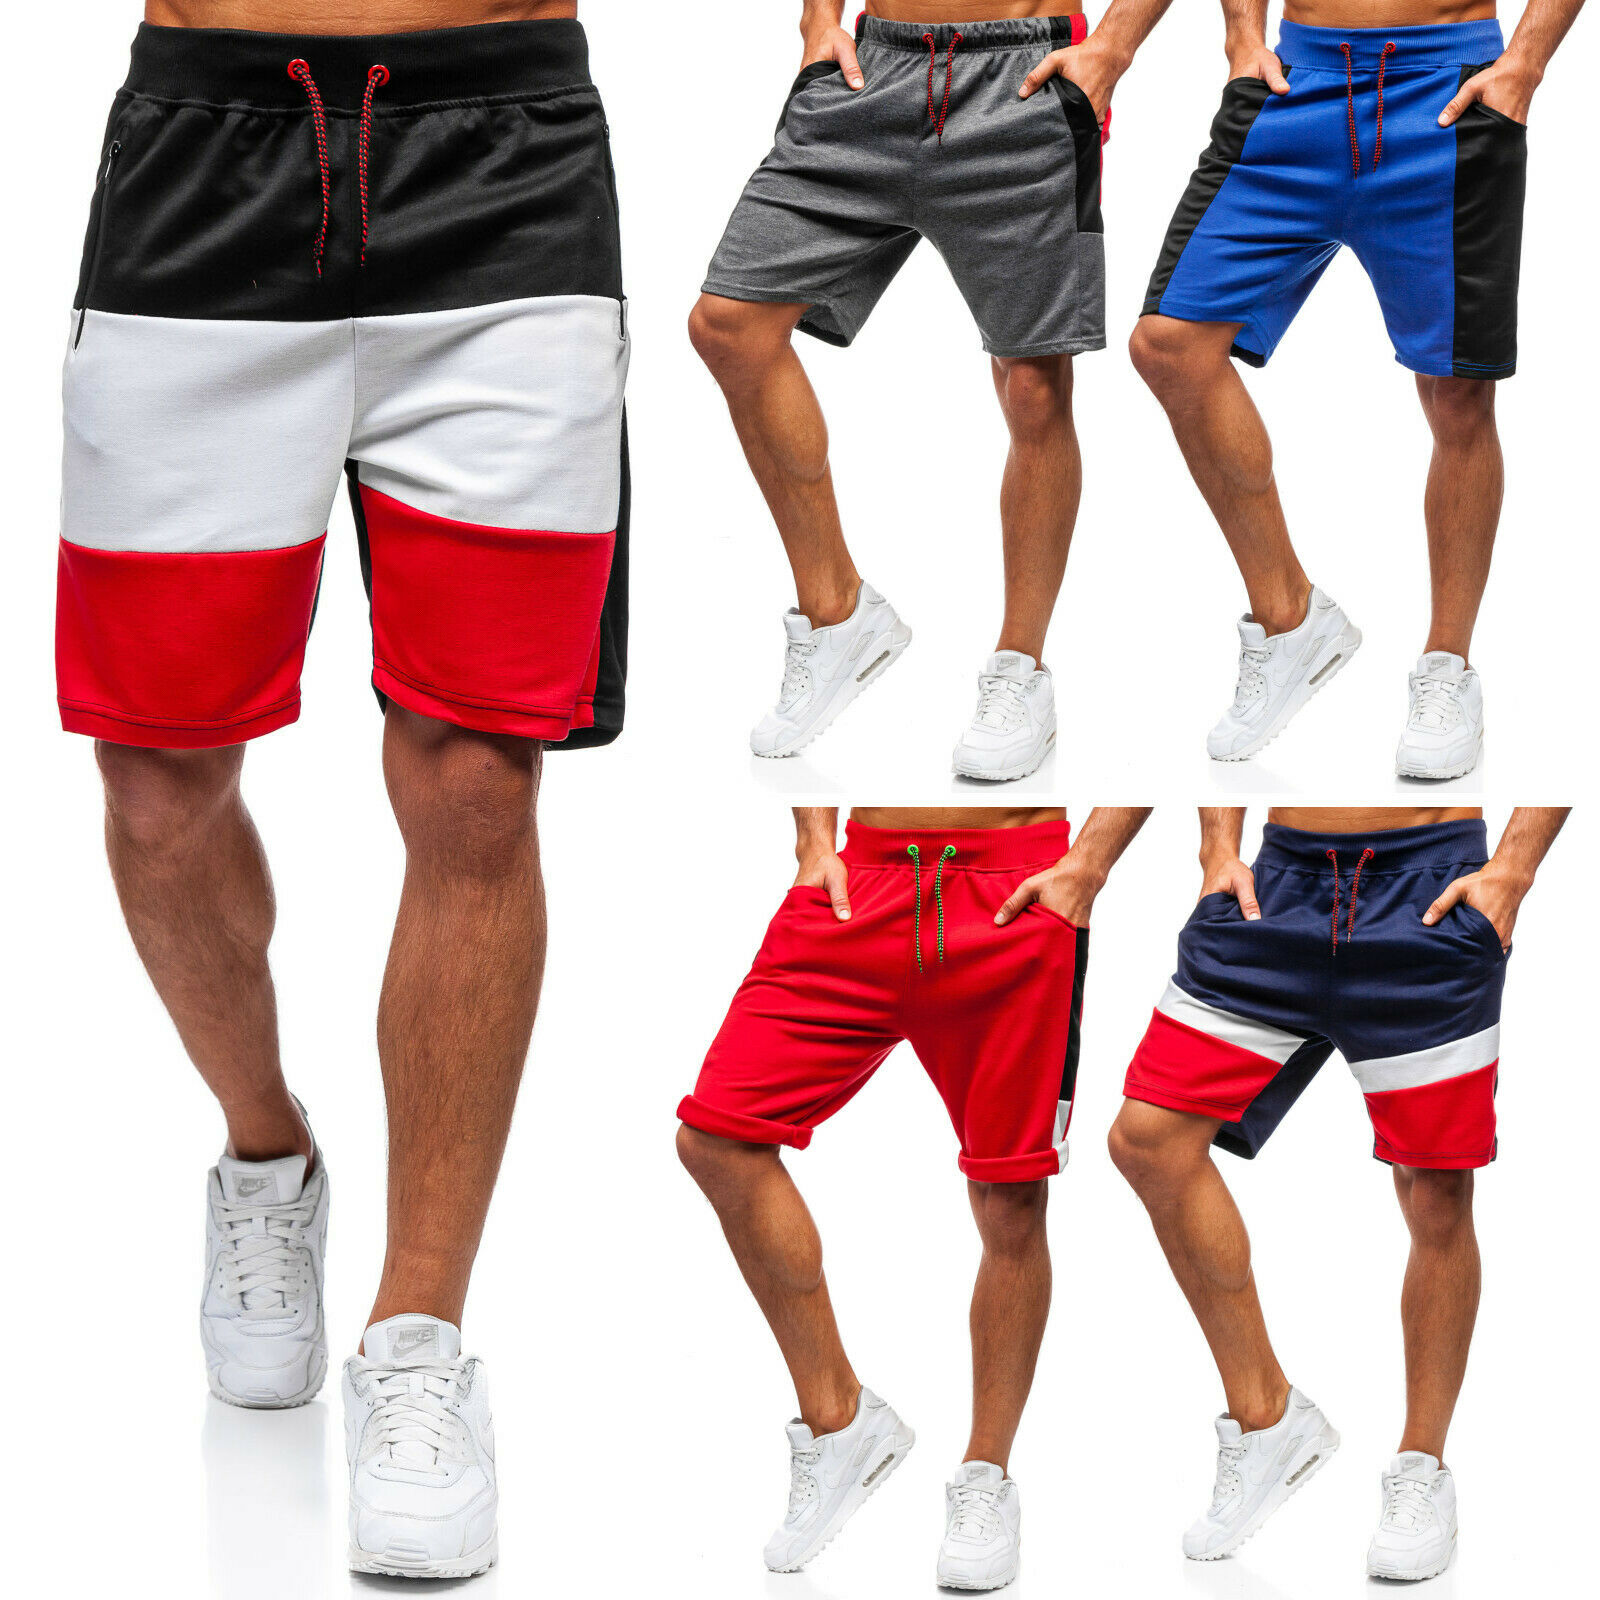 Shorts Kurzhose Bermudas Sporthose Trainings Jogging Herren Mix BOLF 7G7 Basic